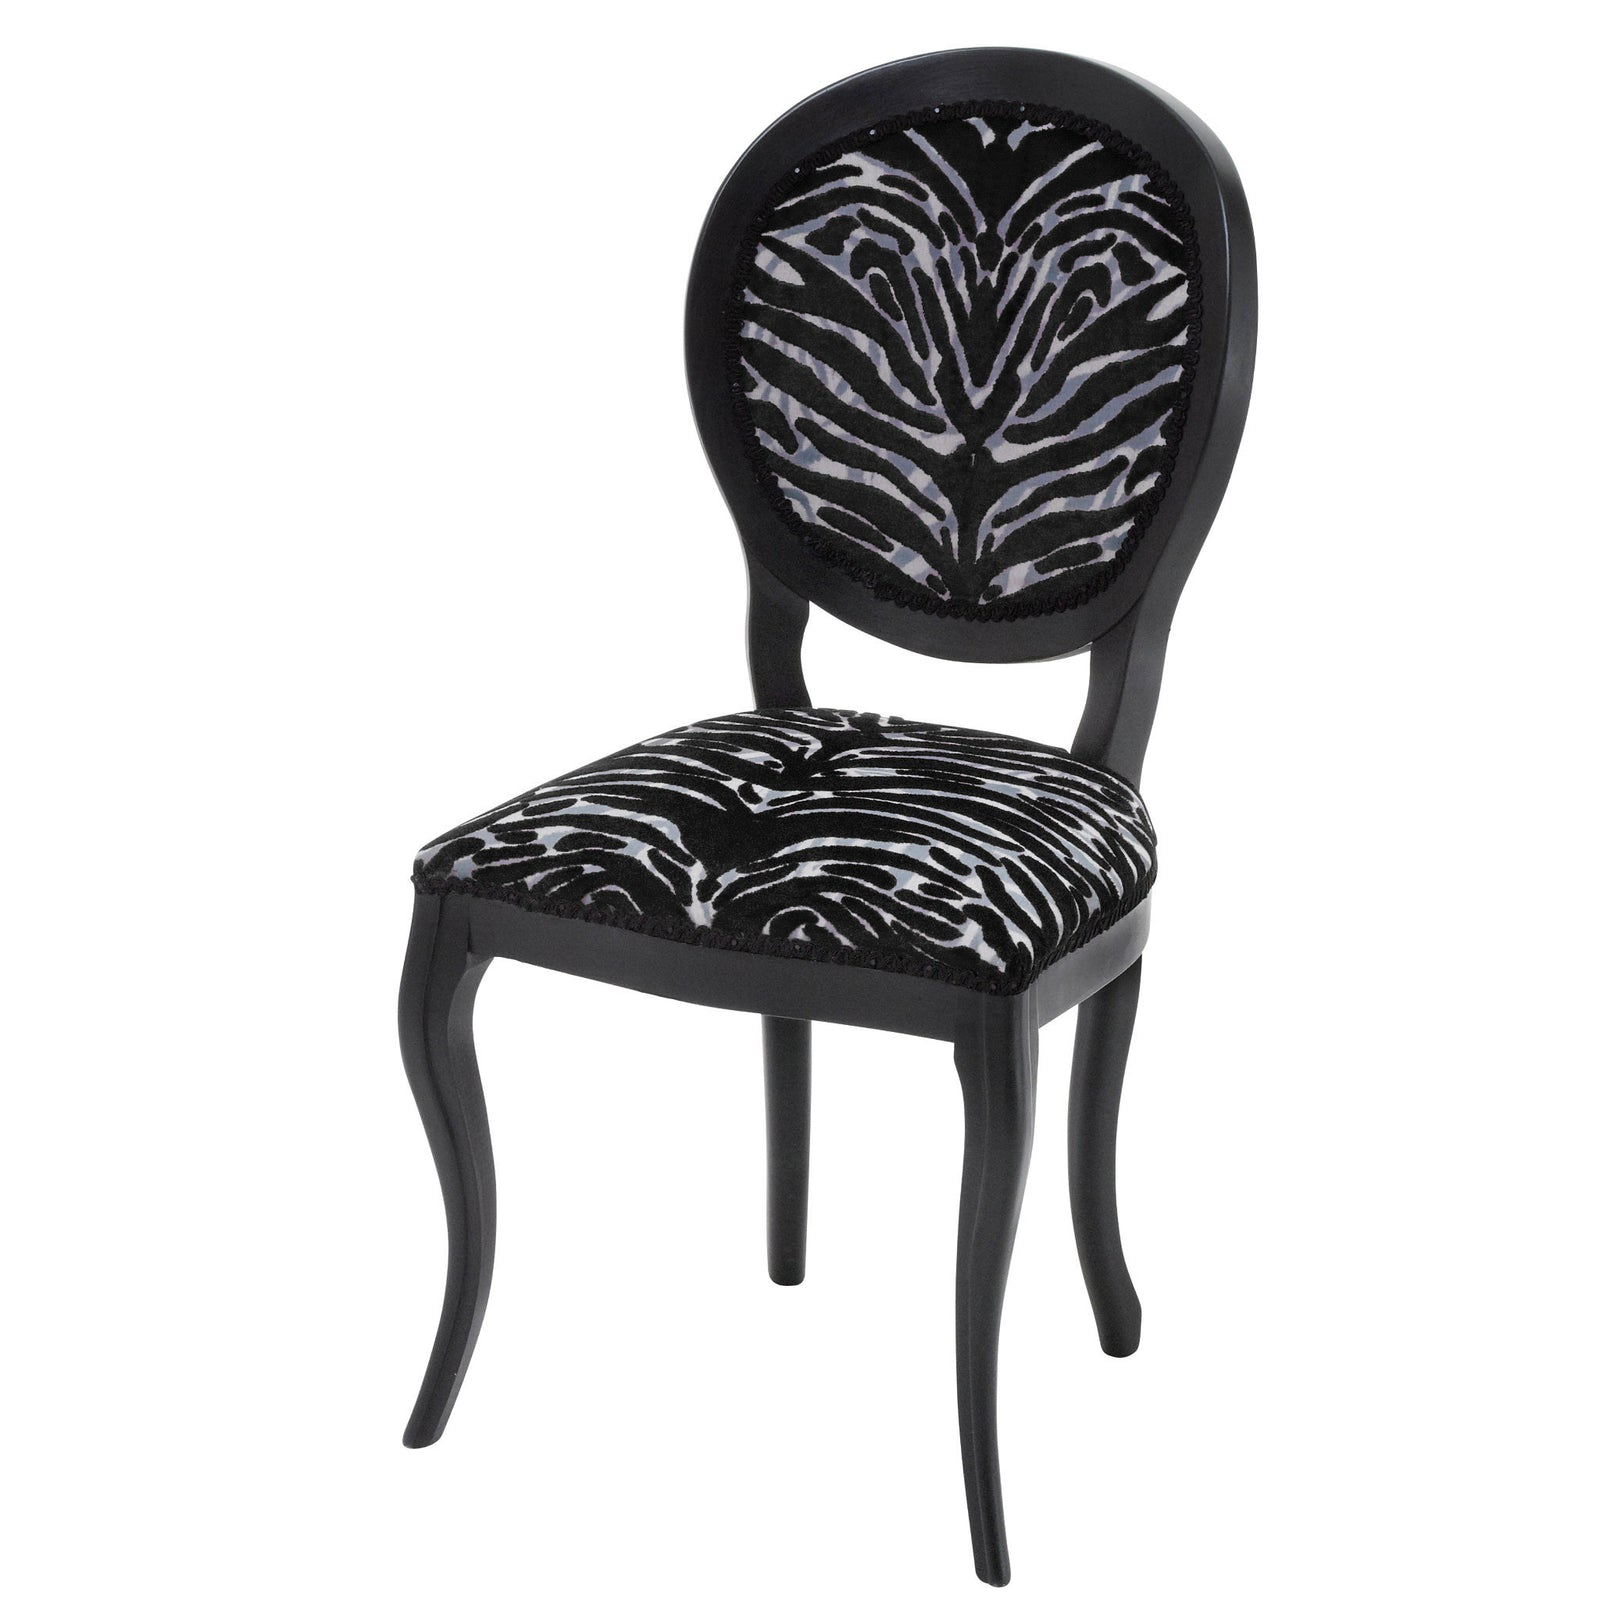 Designer Chair upholstered in Soft Pantigre Onyx finished in Matte Black.